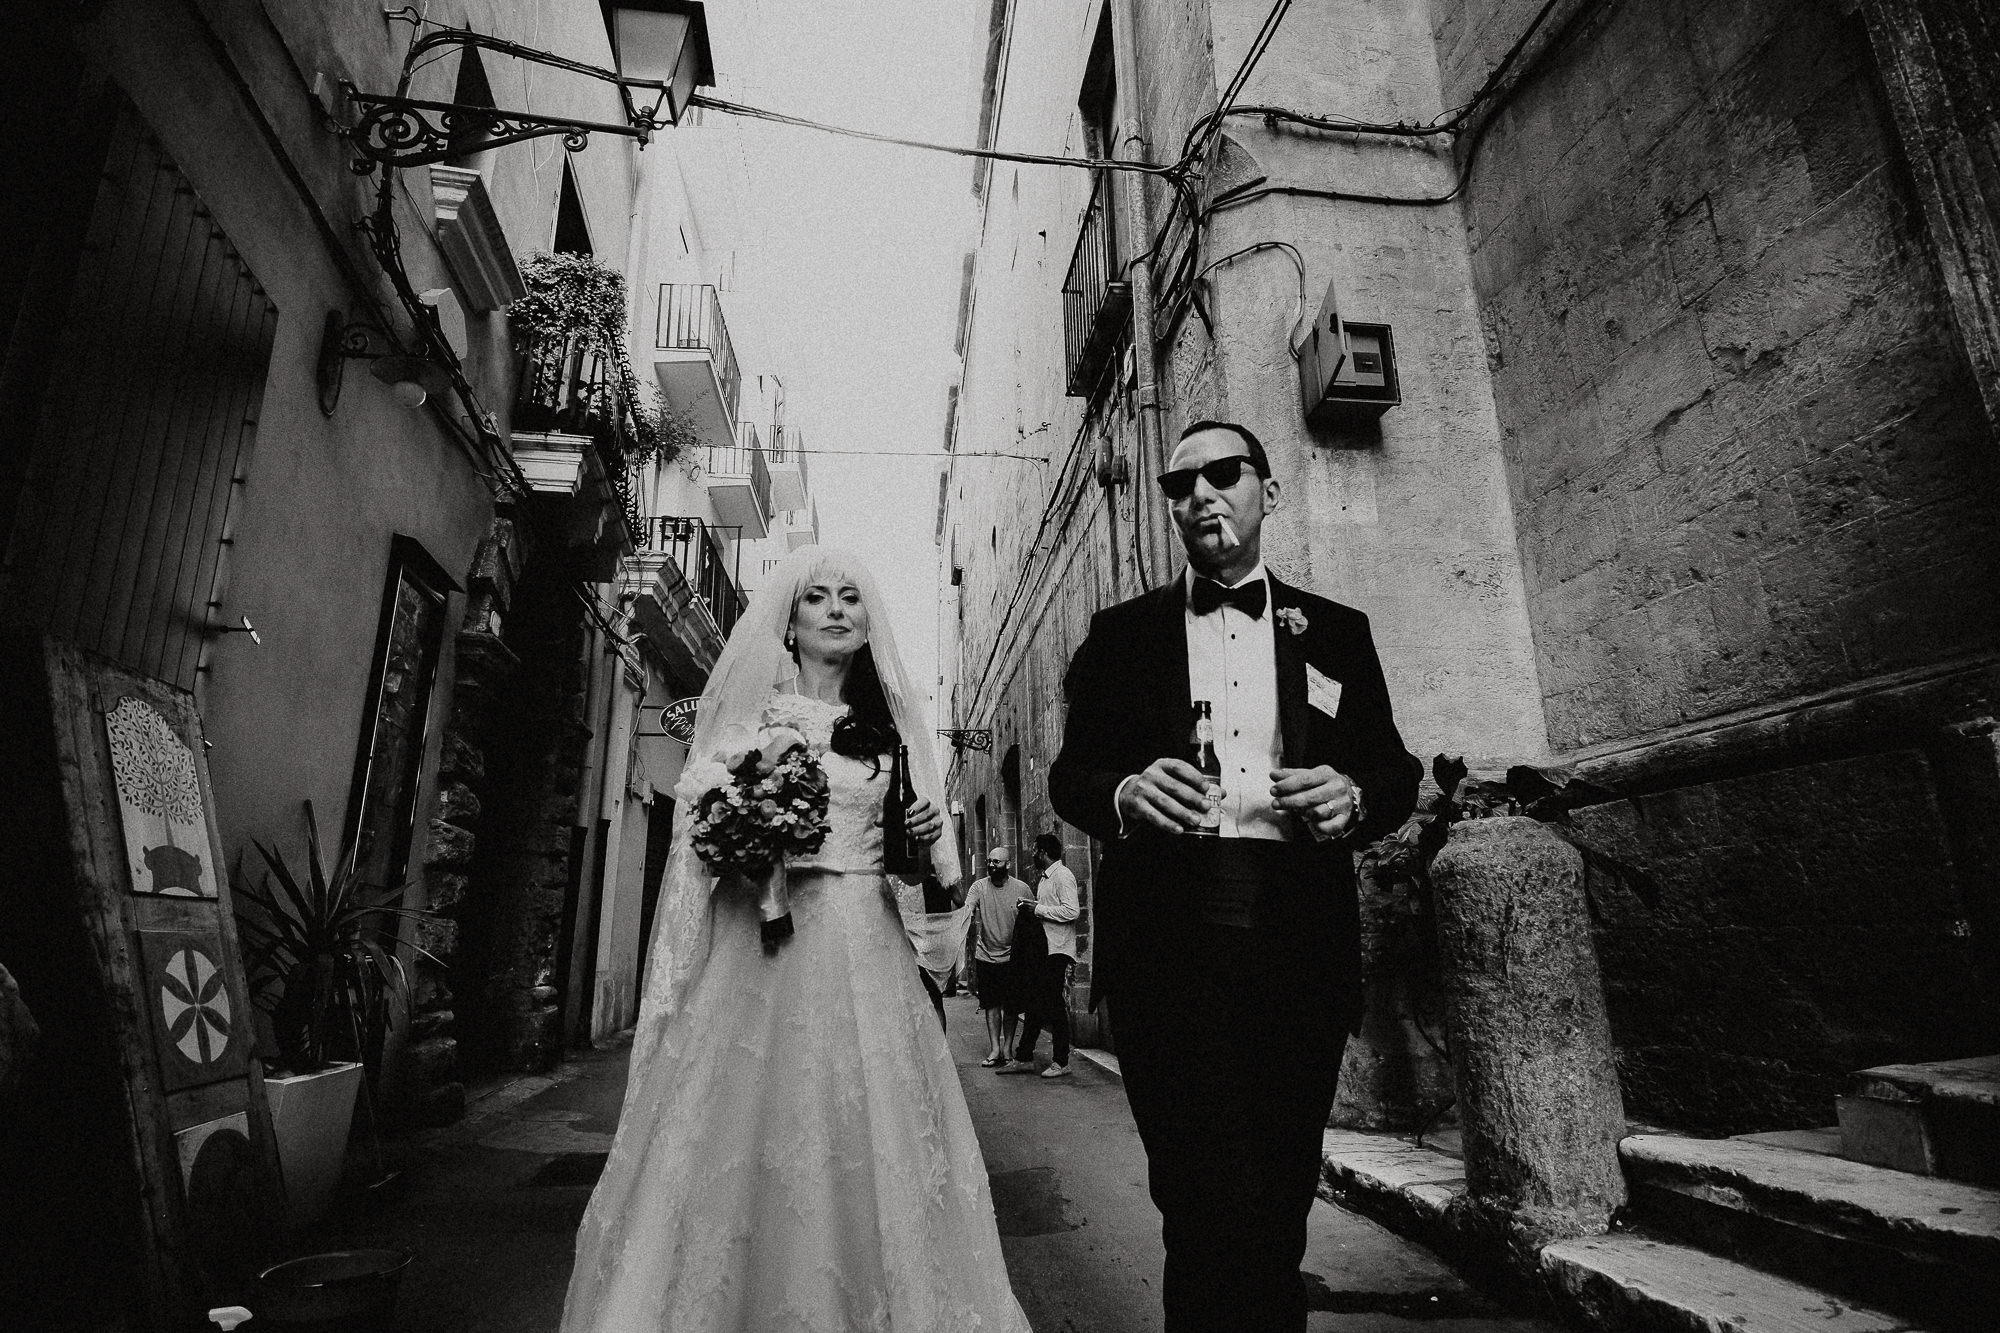 wedding-elopement-photographer-destination-puglia-boho-vintage-creative-intimate